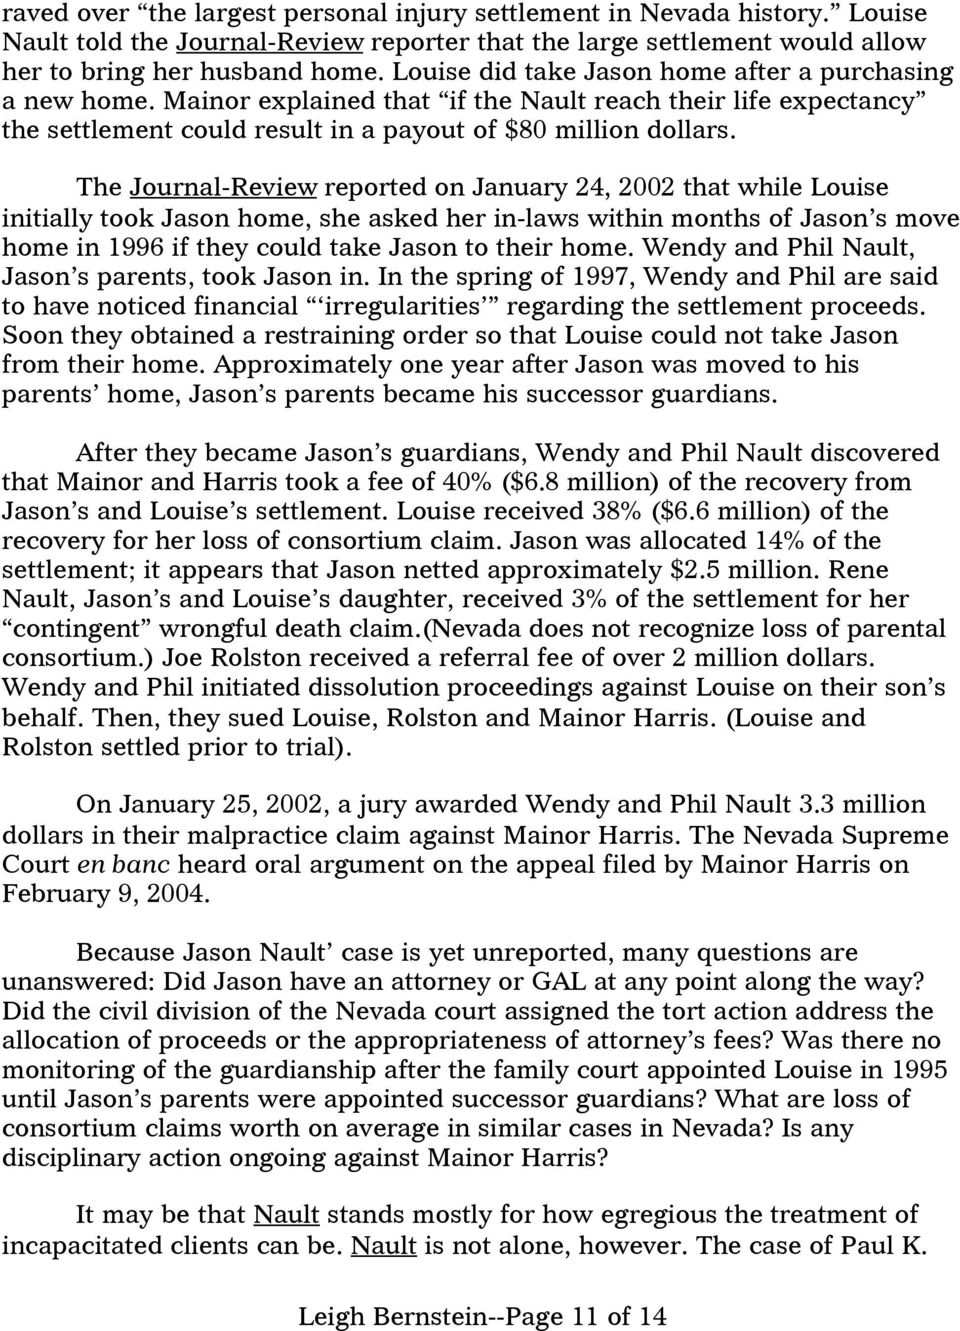 The Journal-Review reported on January 24, 2002 that while Louise initially took Jason home, she asked her in-laws within months of Jason s move home in 1996 if they could take Jason to their home.